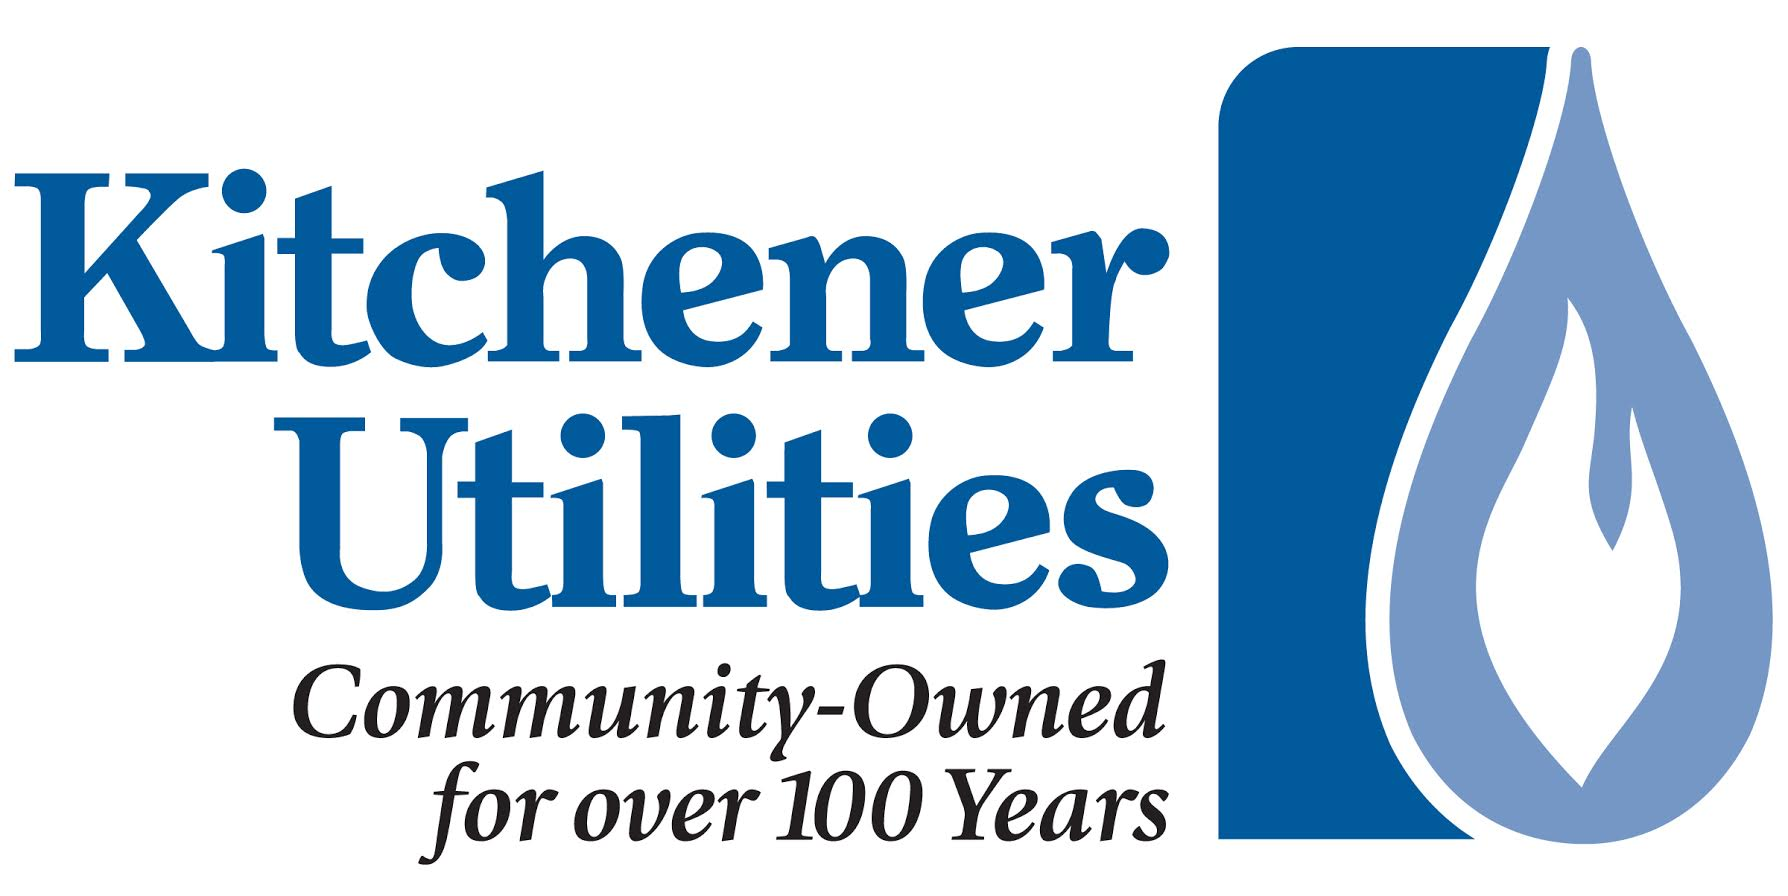 Logo has a stylized flame and the text Kitchener Utilities Community-Owned for over 100 years